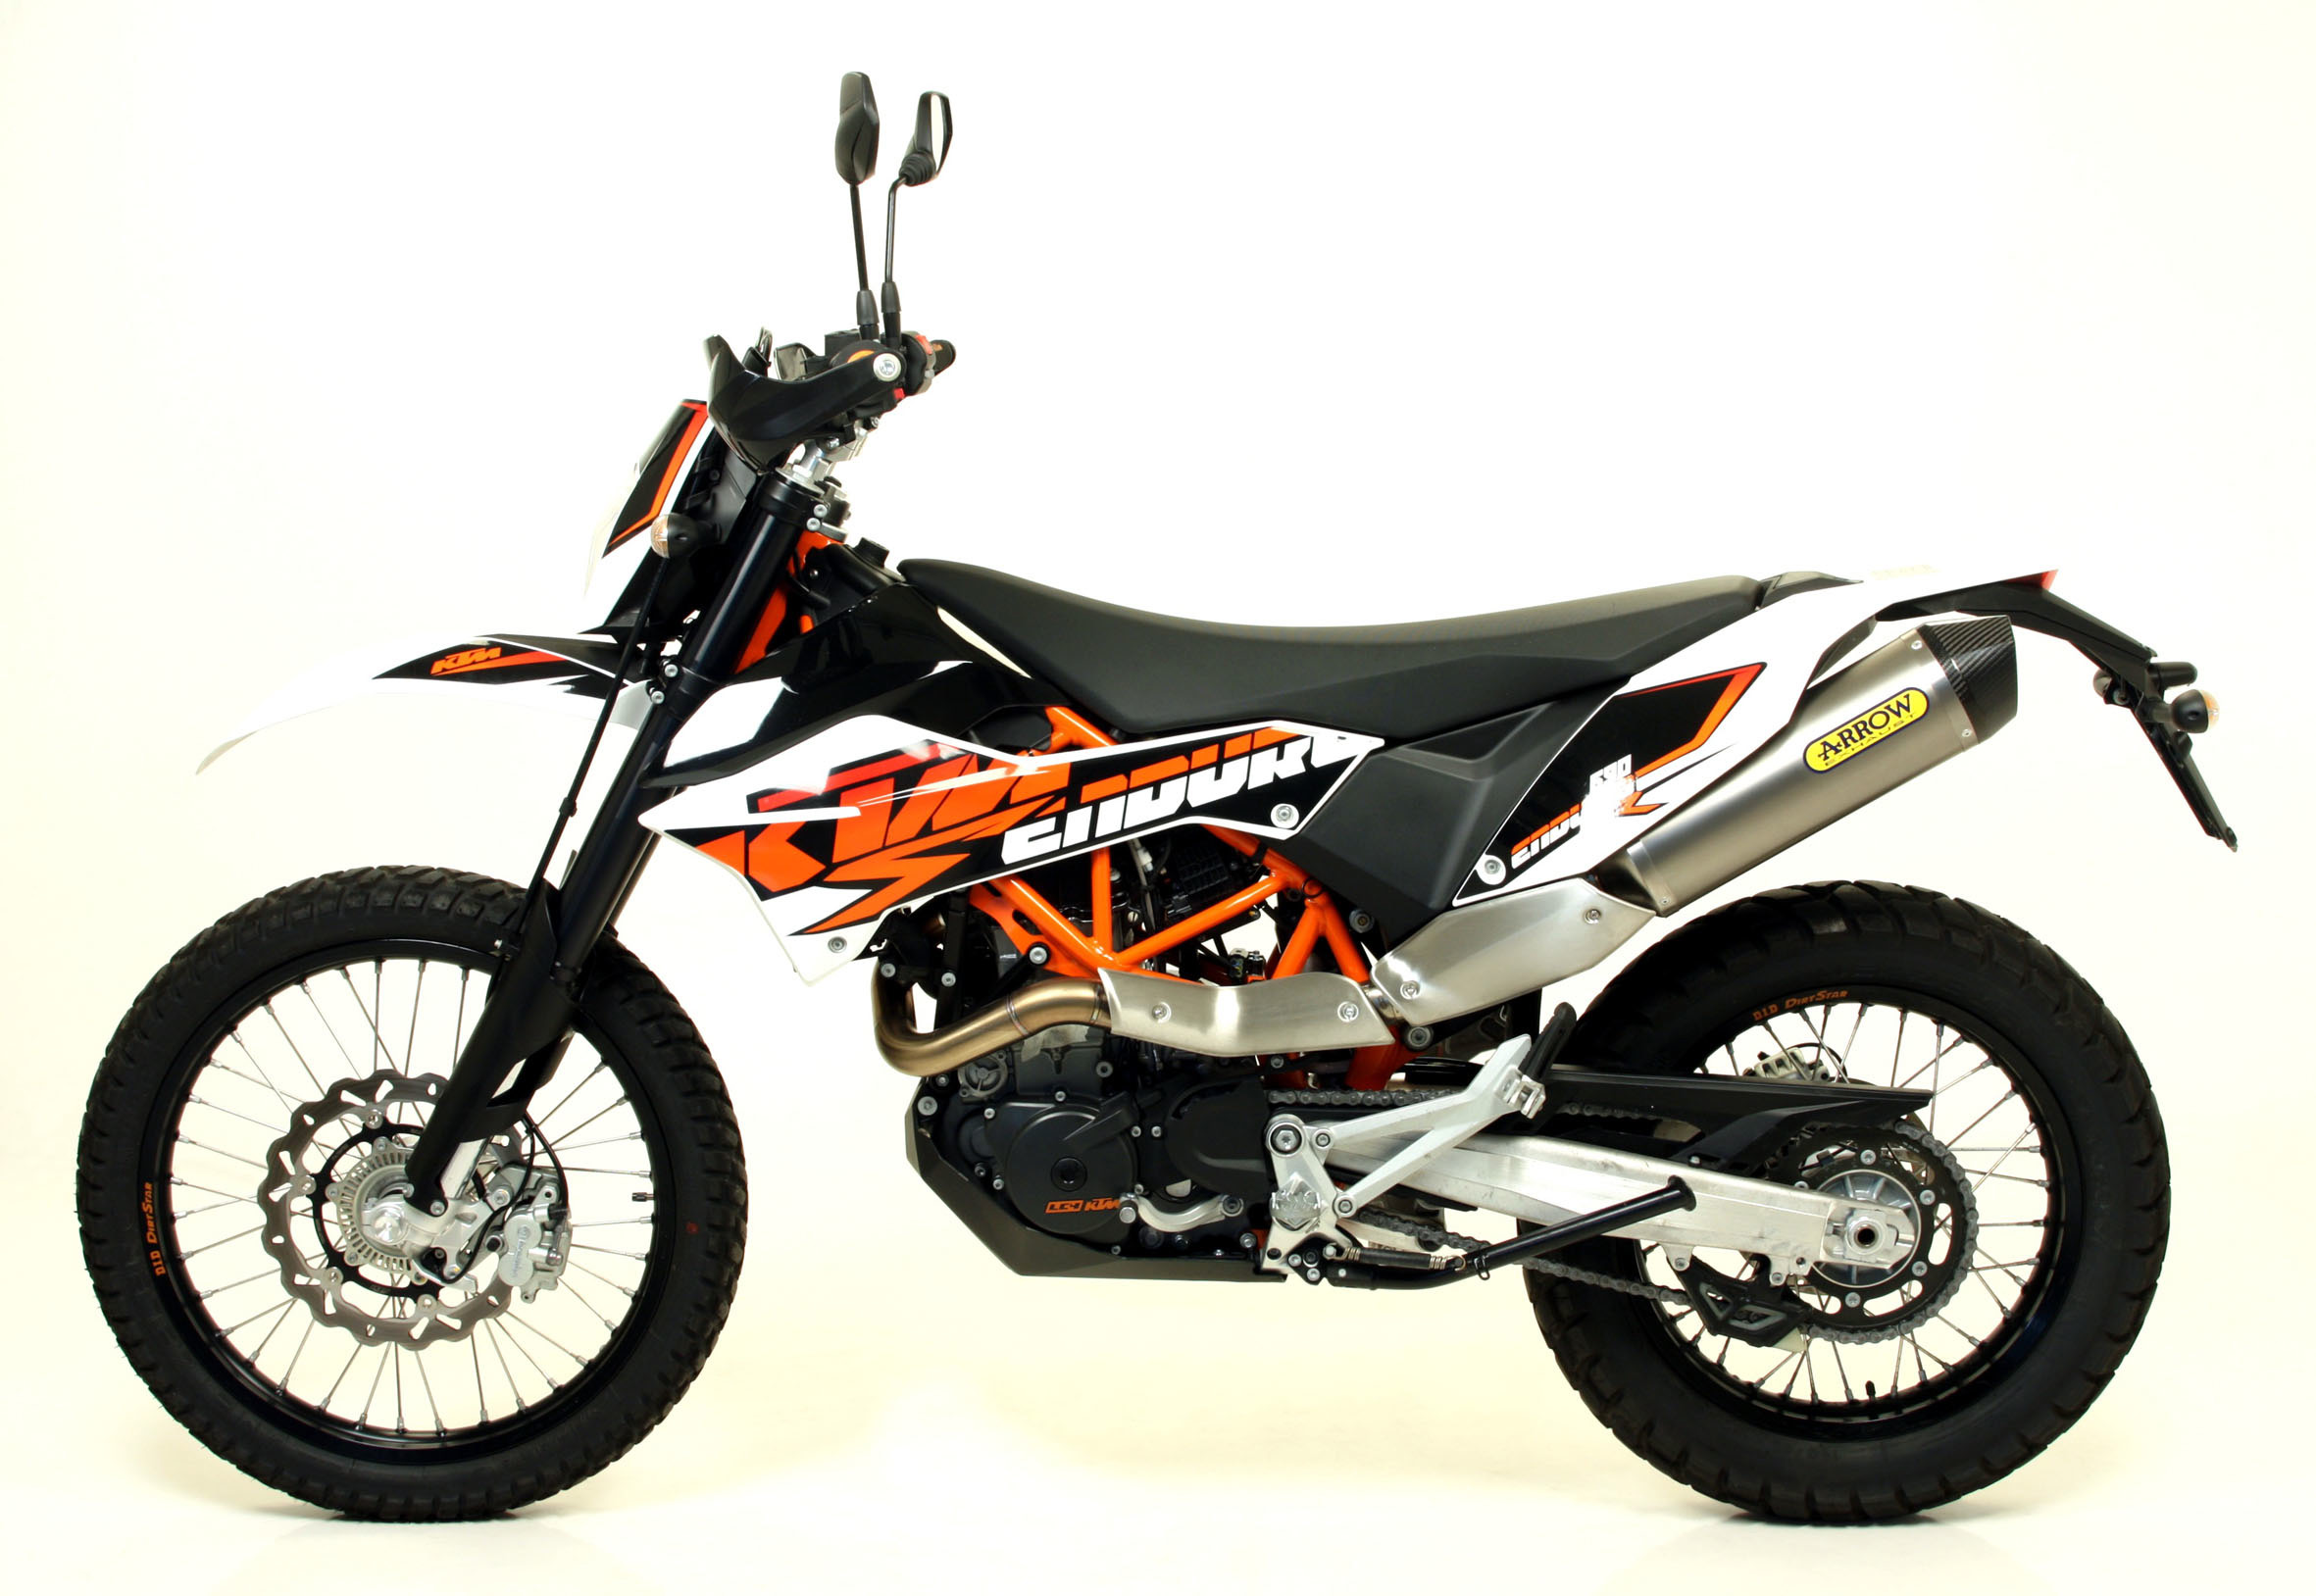 Ktm 690 Smc 2008 Specifications